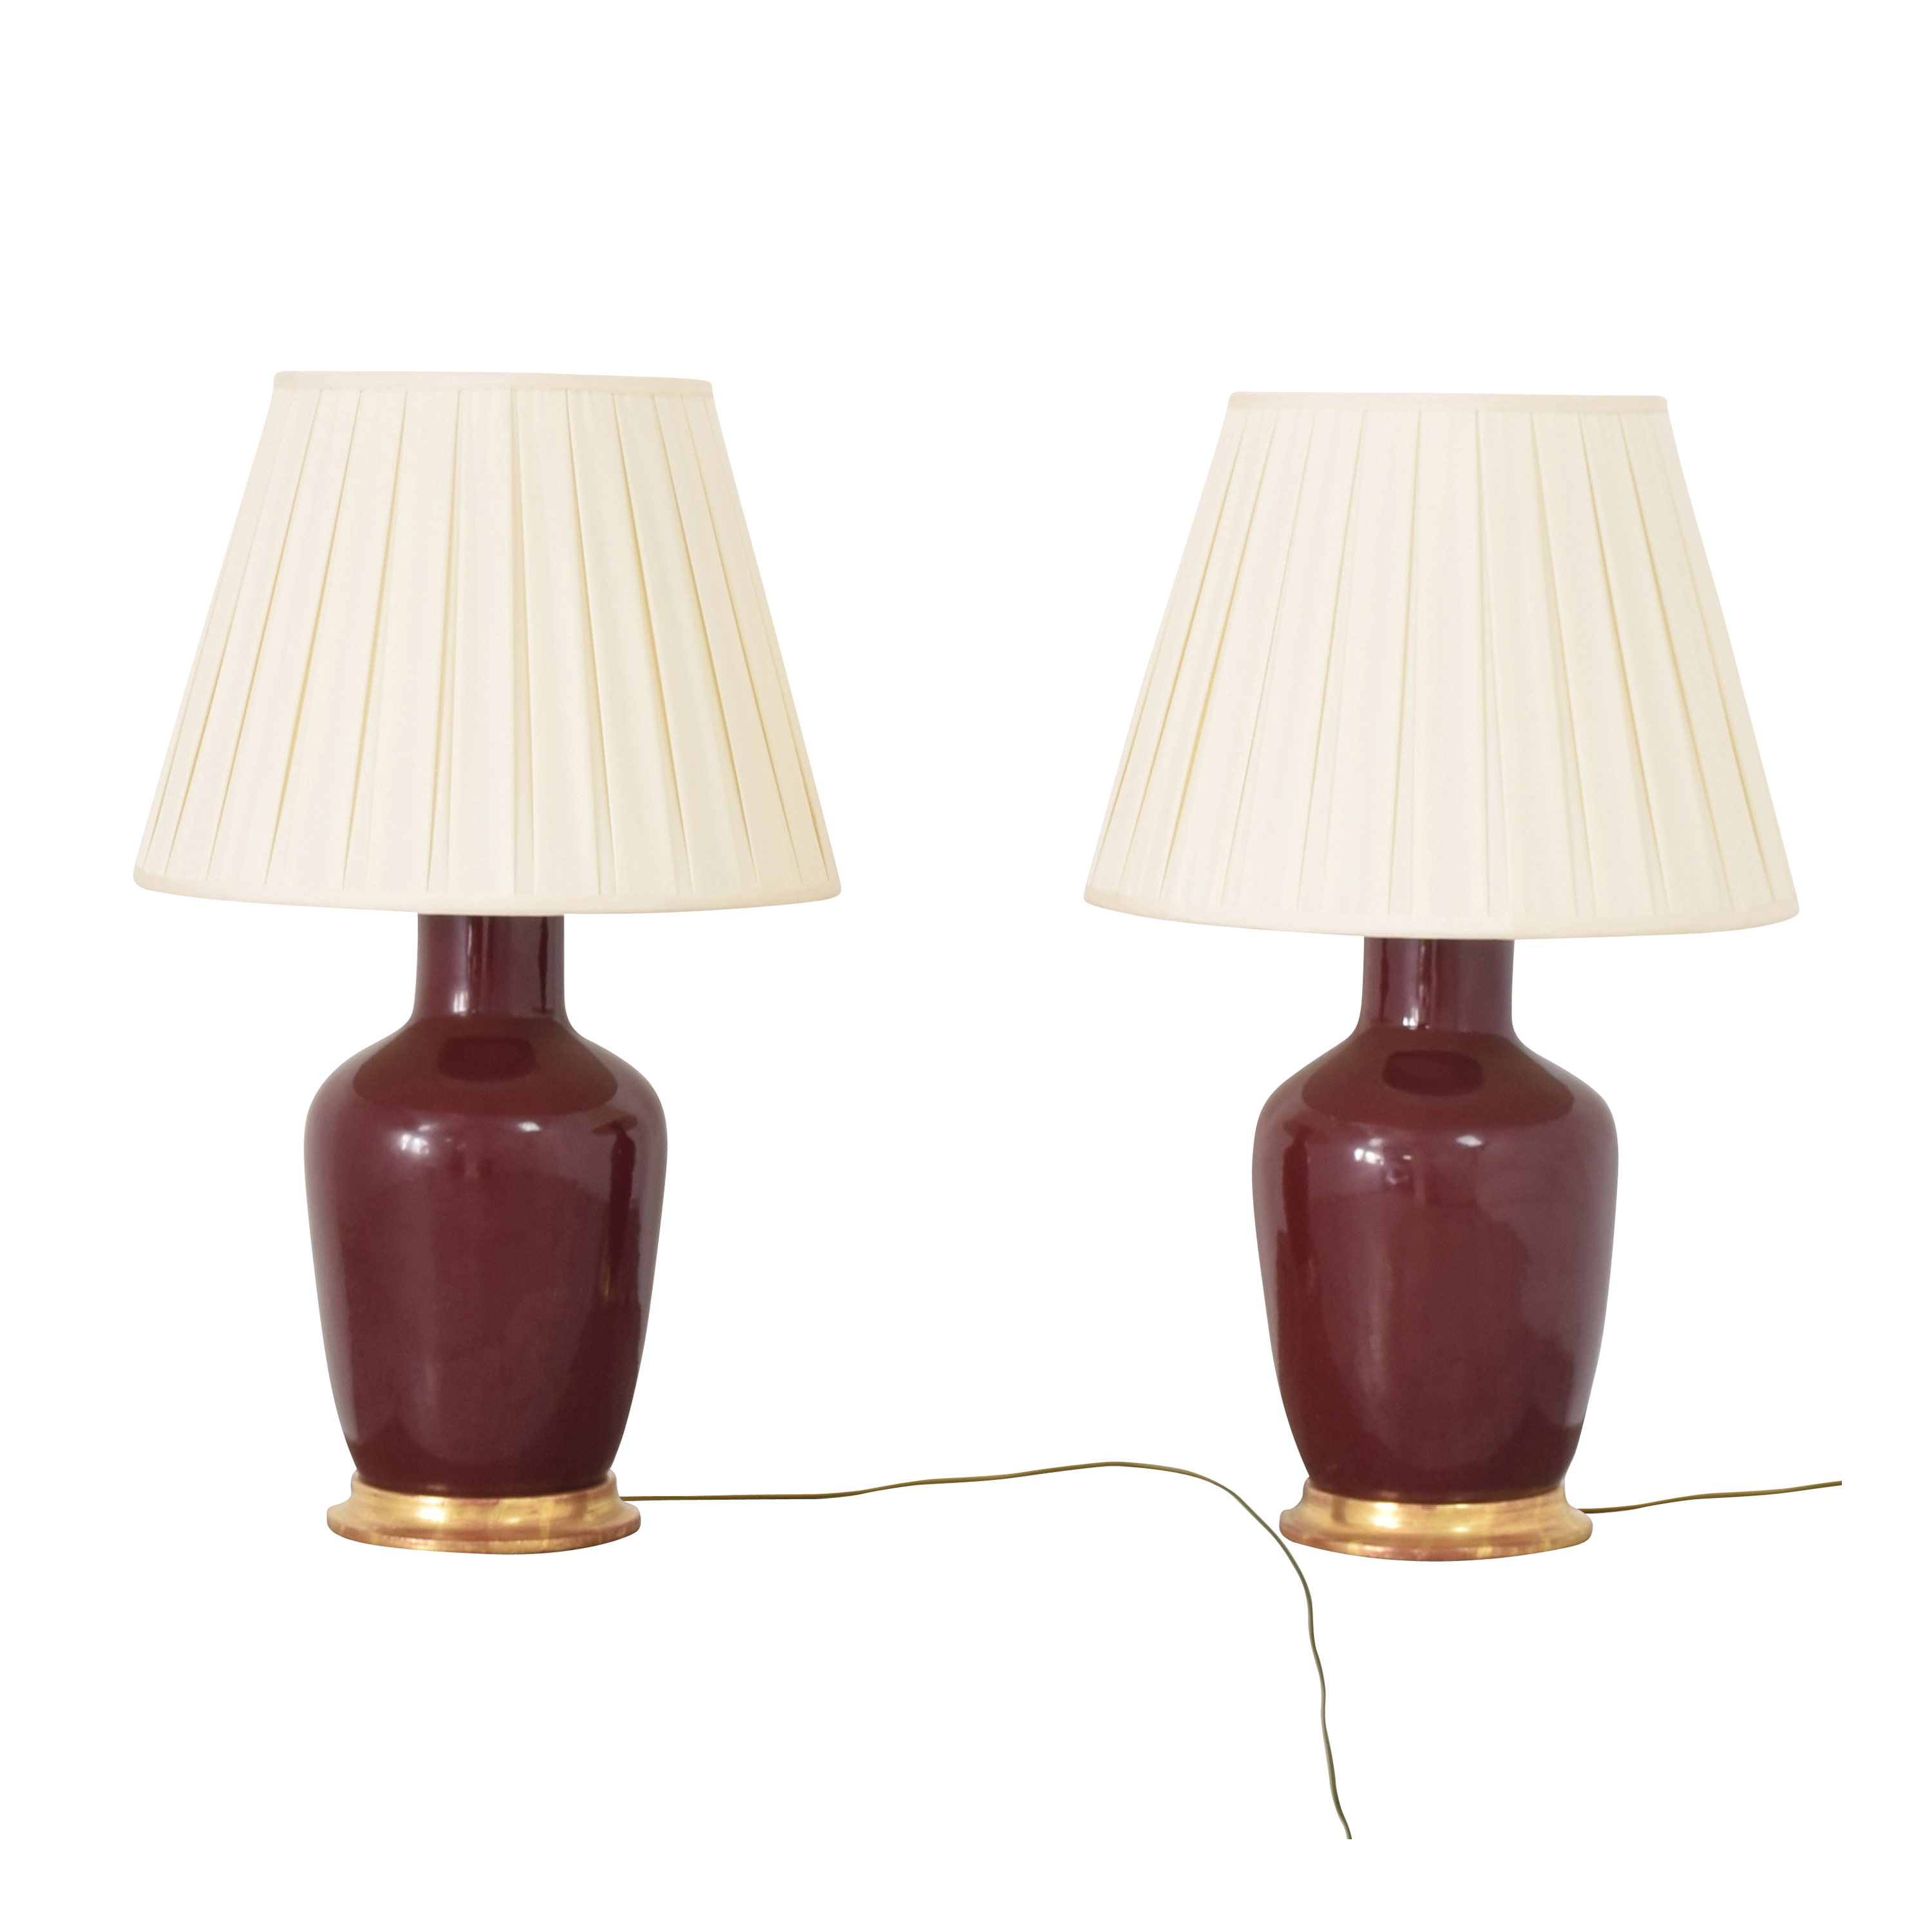 Christopher Spitzmiller Christopher Spitzmiller Ginger Jar Lamps